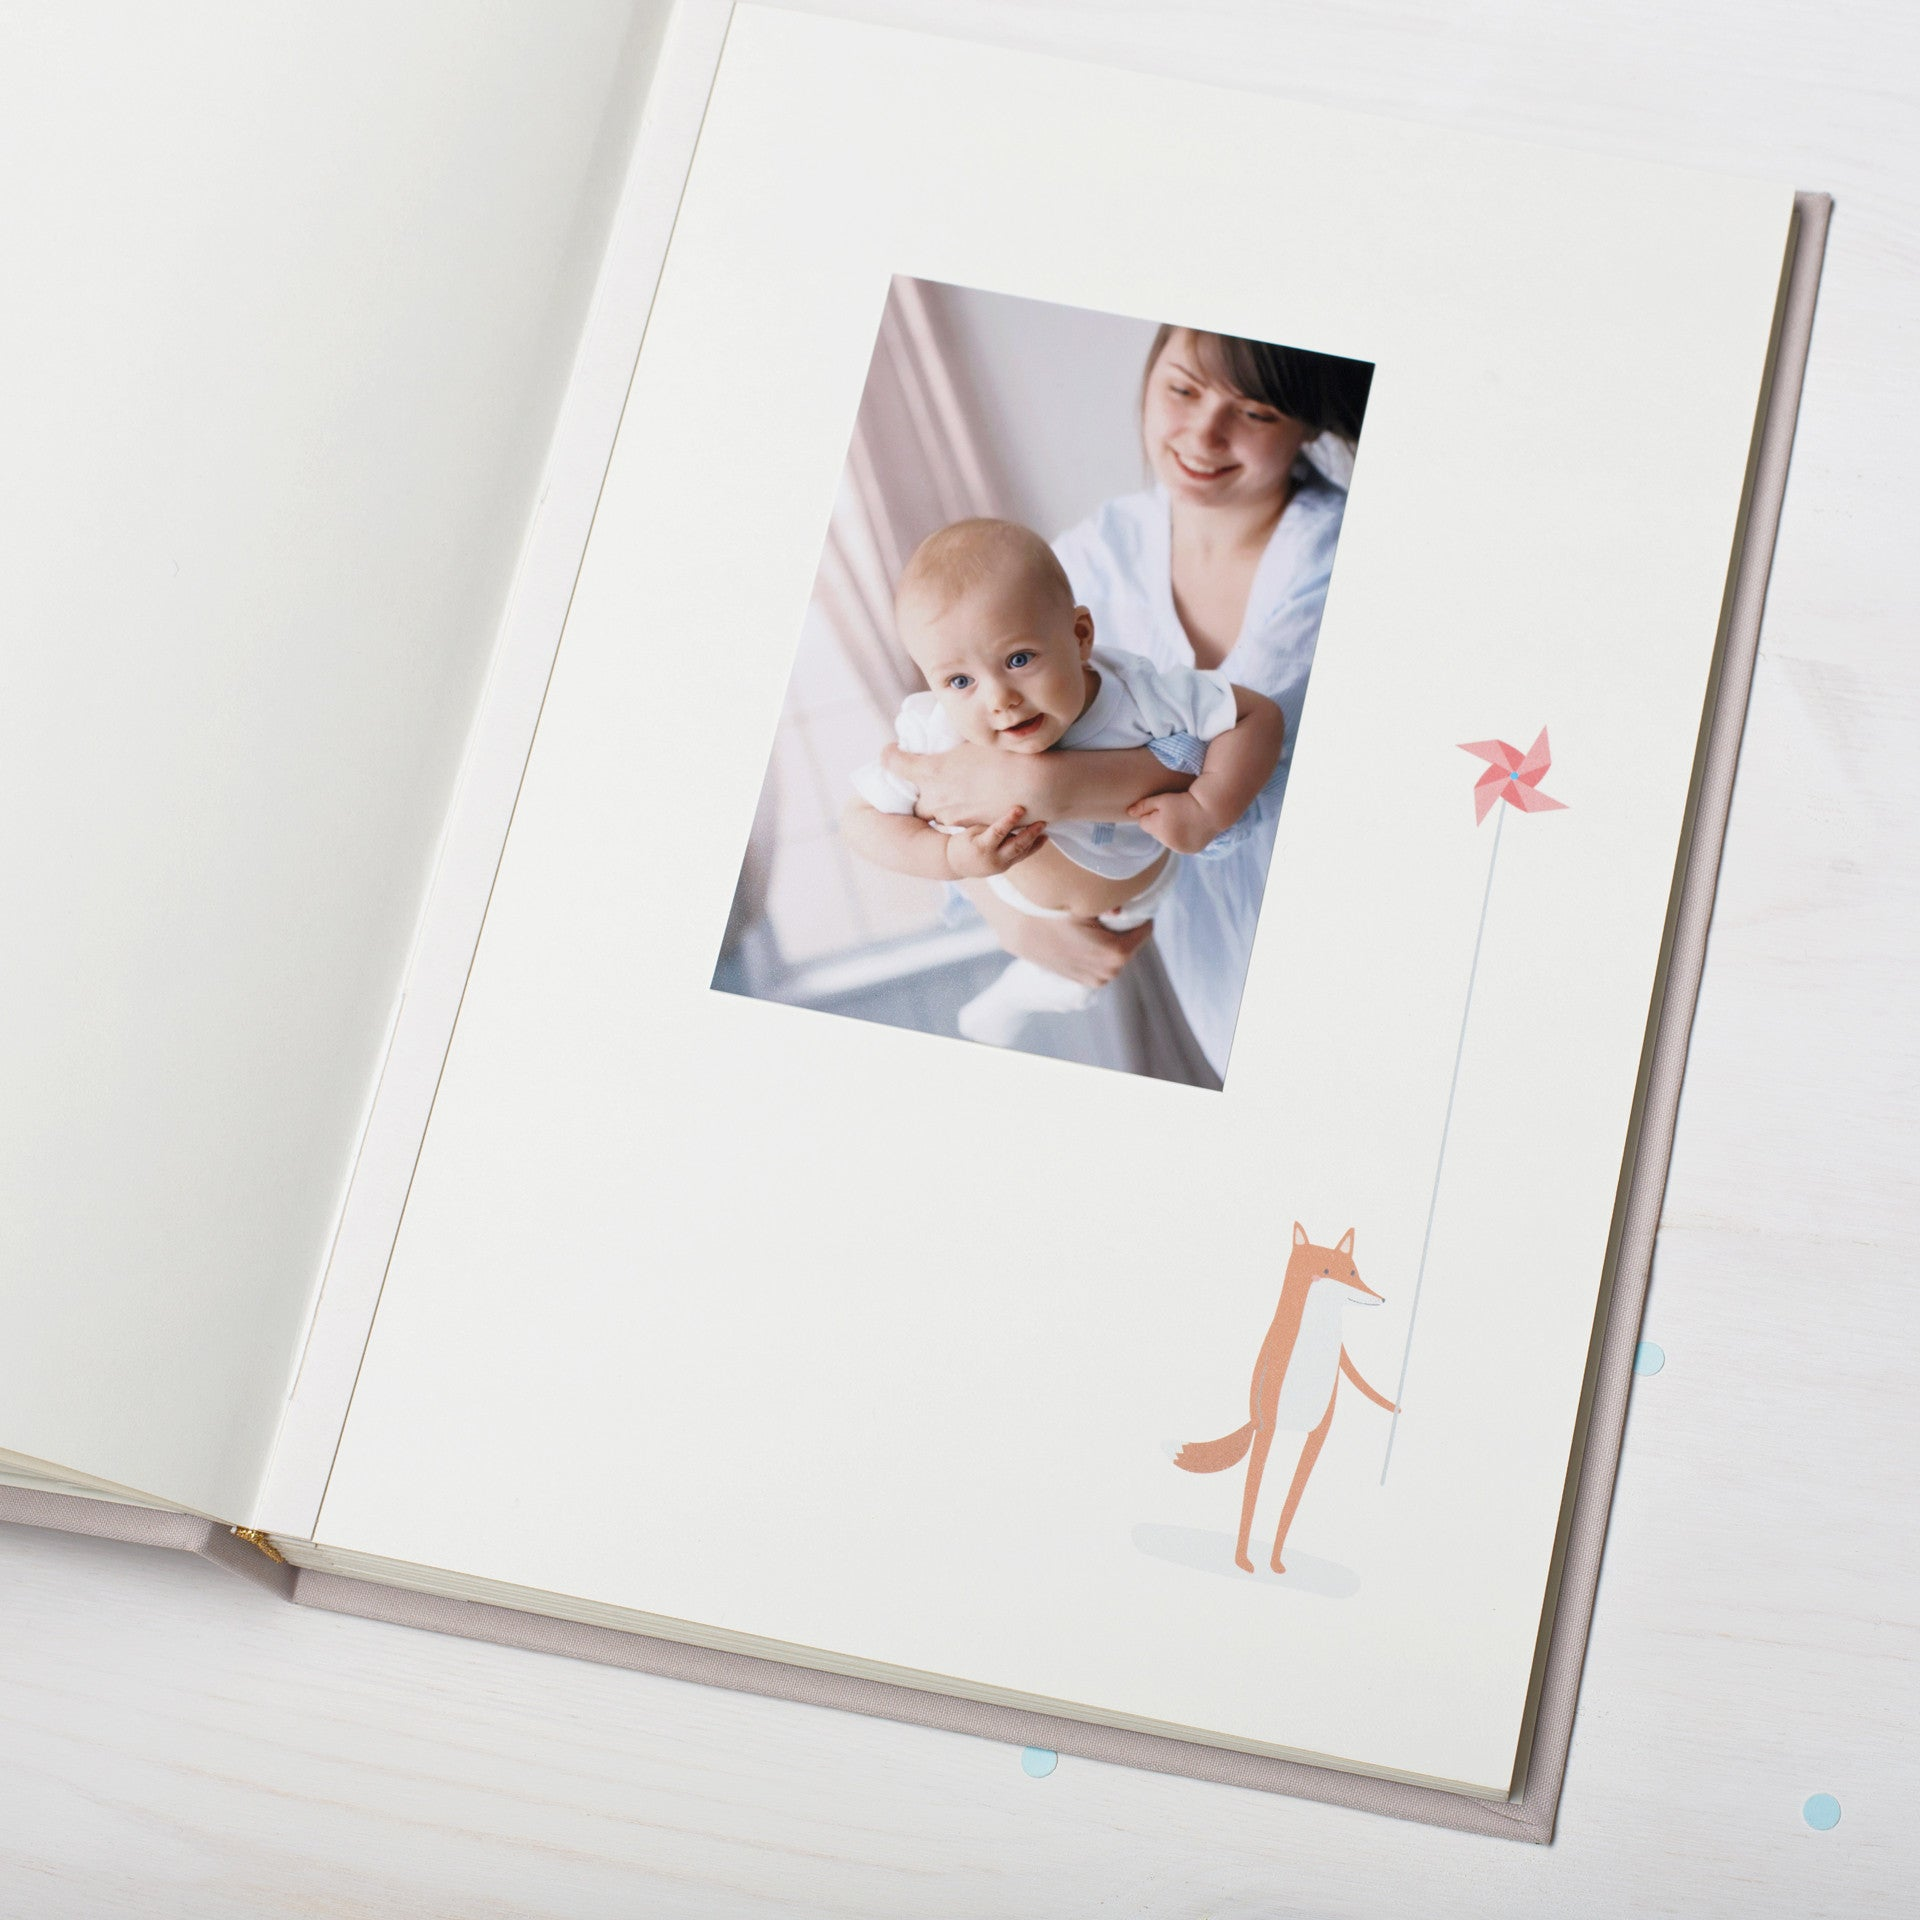 Baby Album with illiustrations for Standard Photos - Liumy